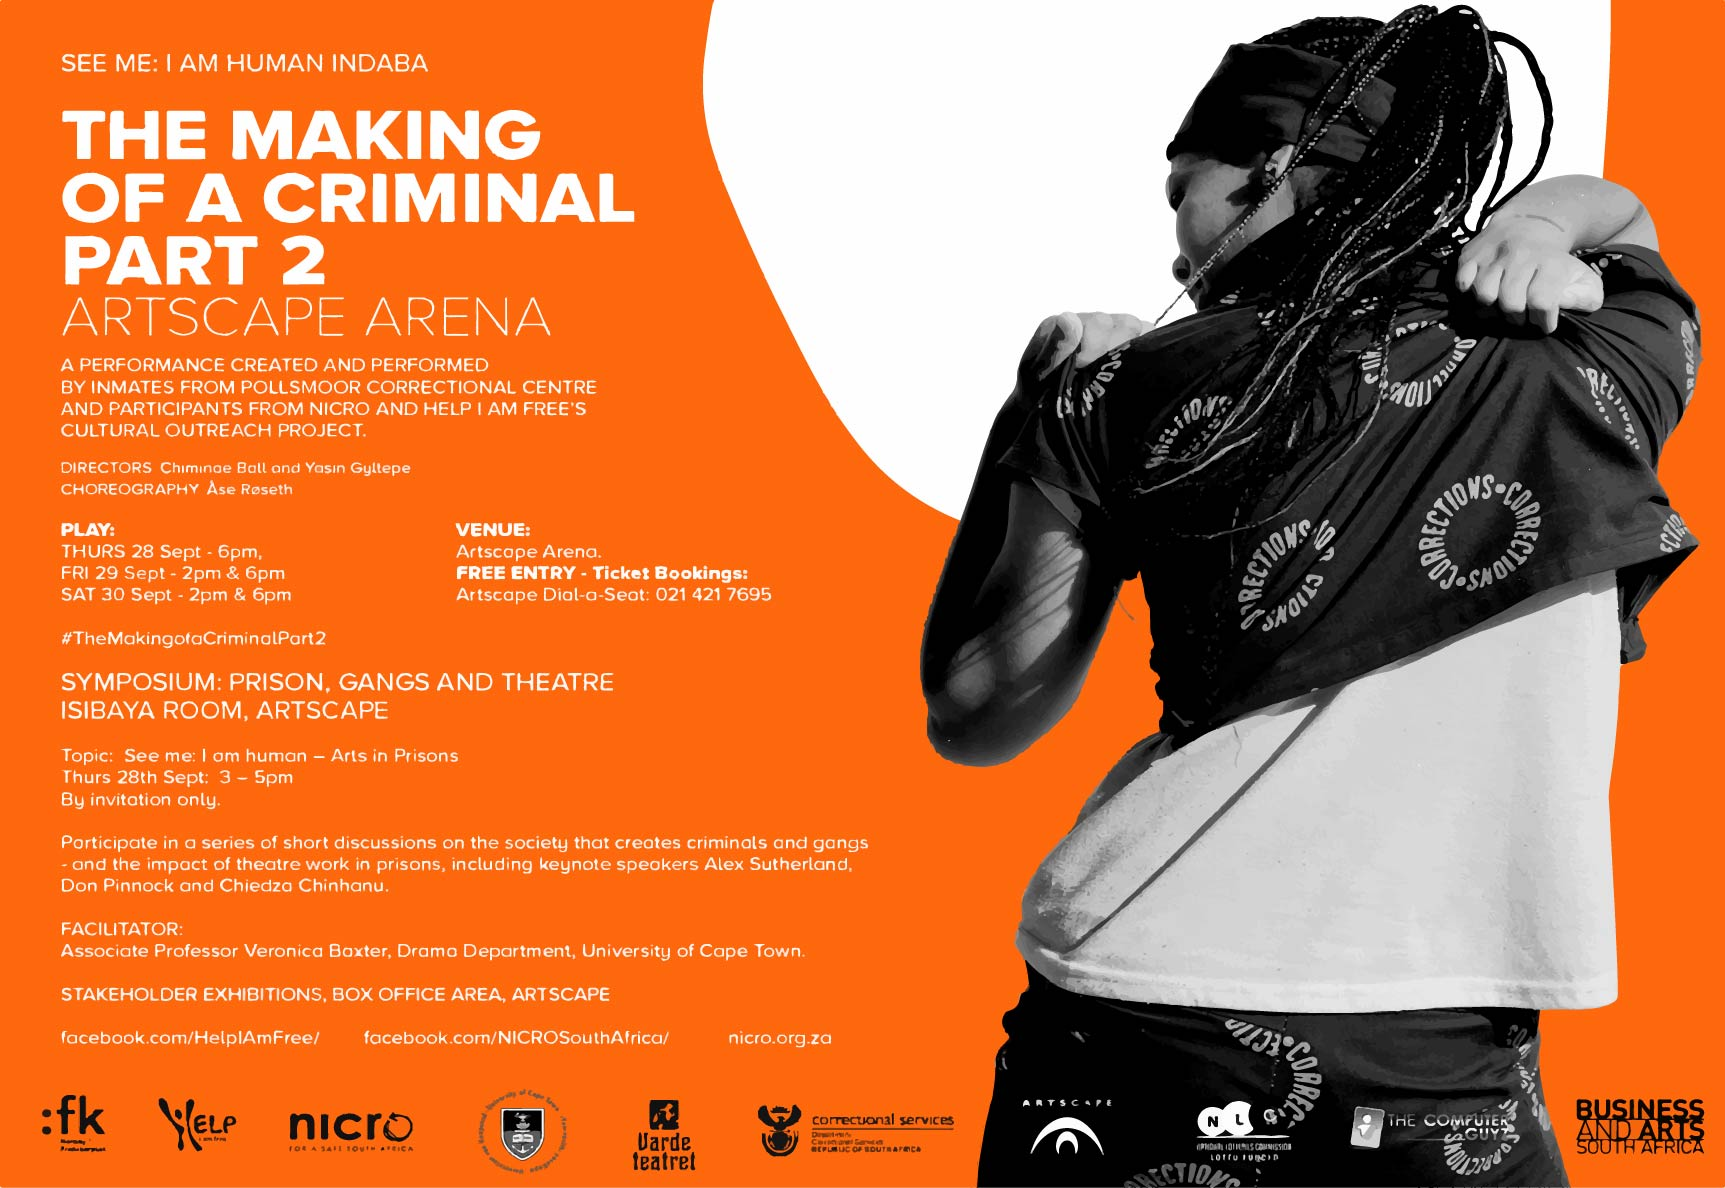 The Making of a Criminal: Part 2 was performed at the Artscape as part of the See Me: I Am Human Indaba.